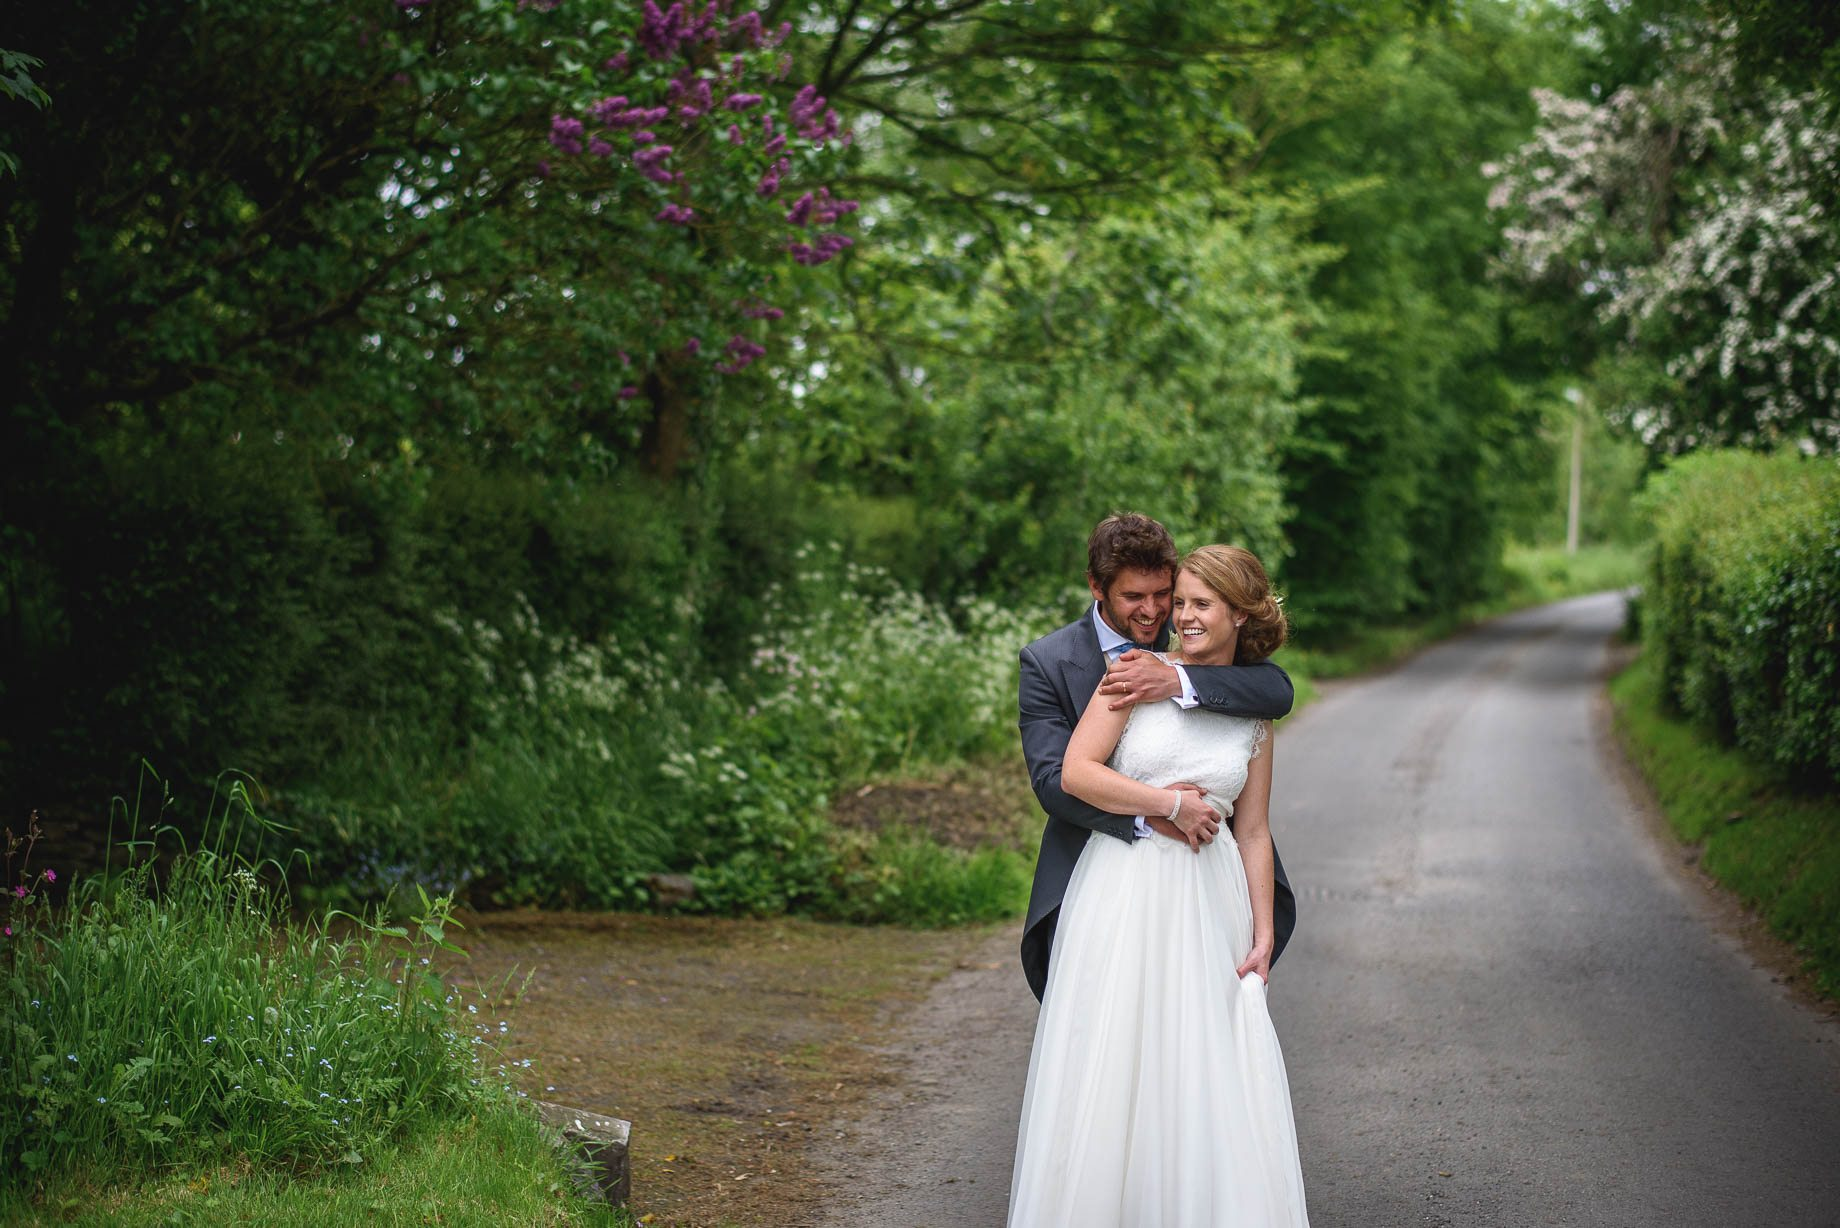 Wiltshire wedding photography by Guy Collier - Lucie and Matt (96 of 198)